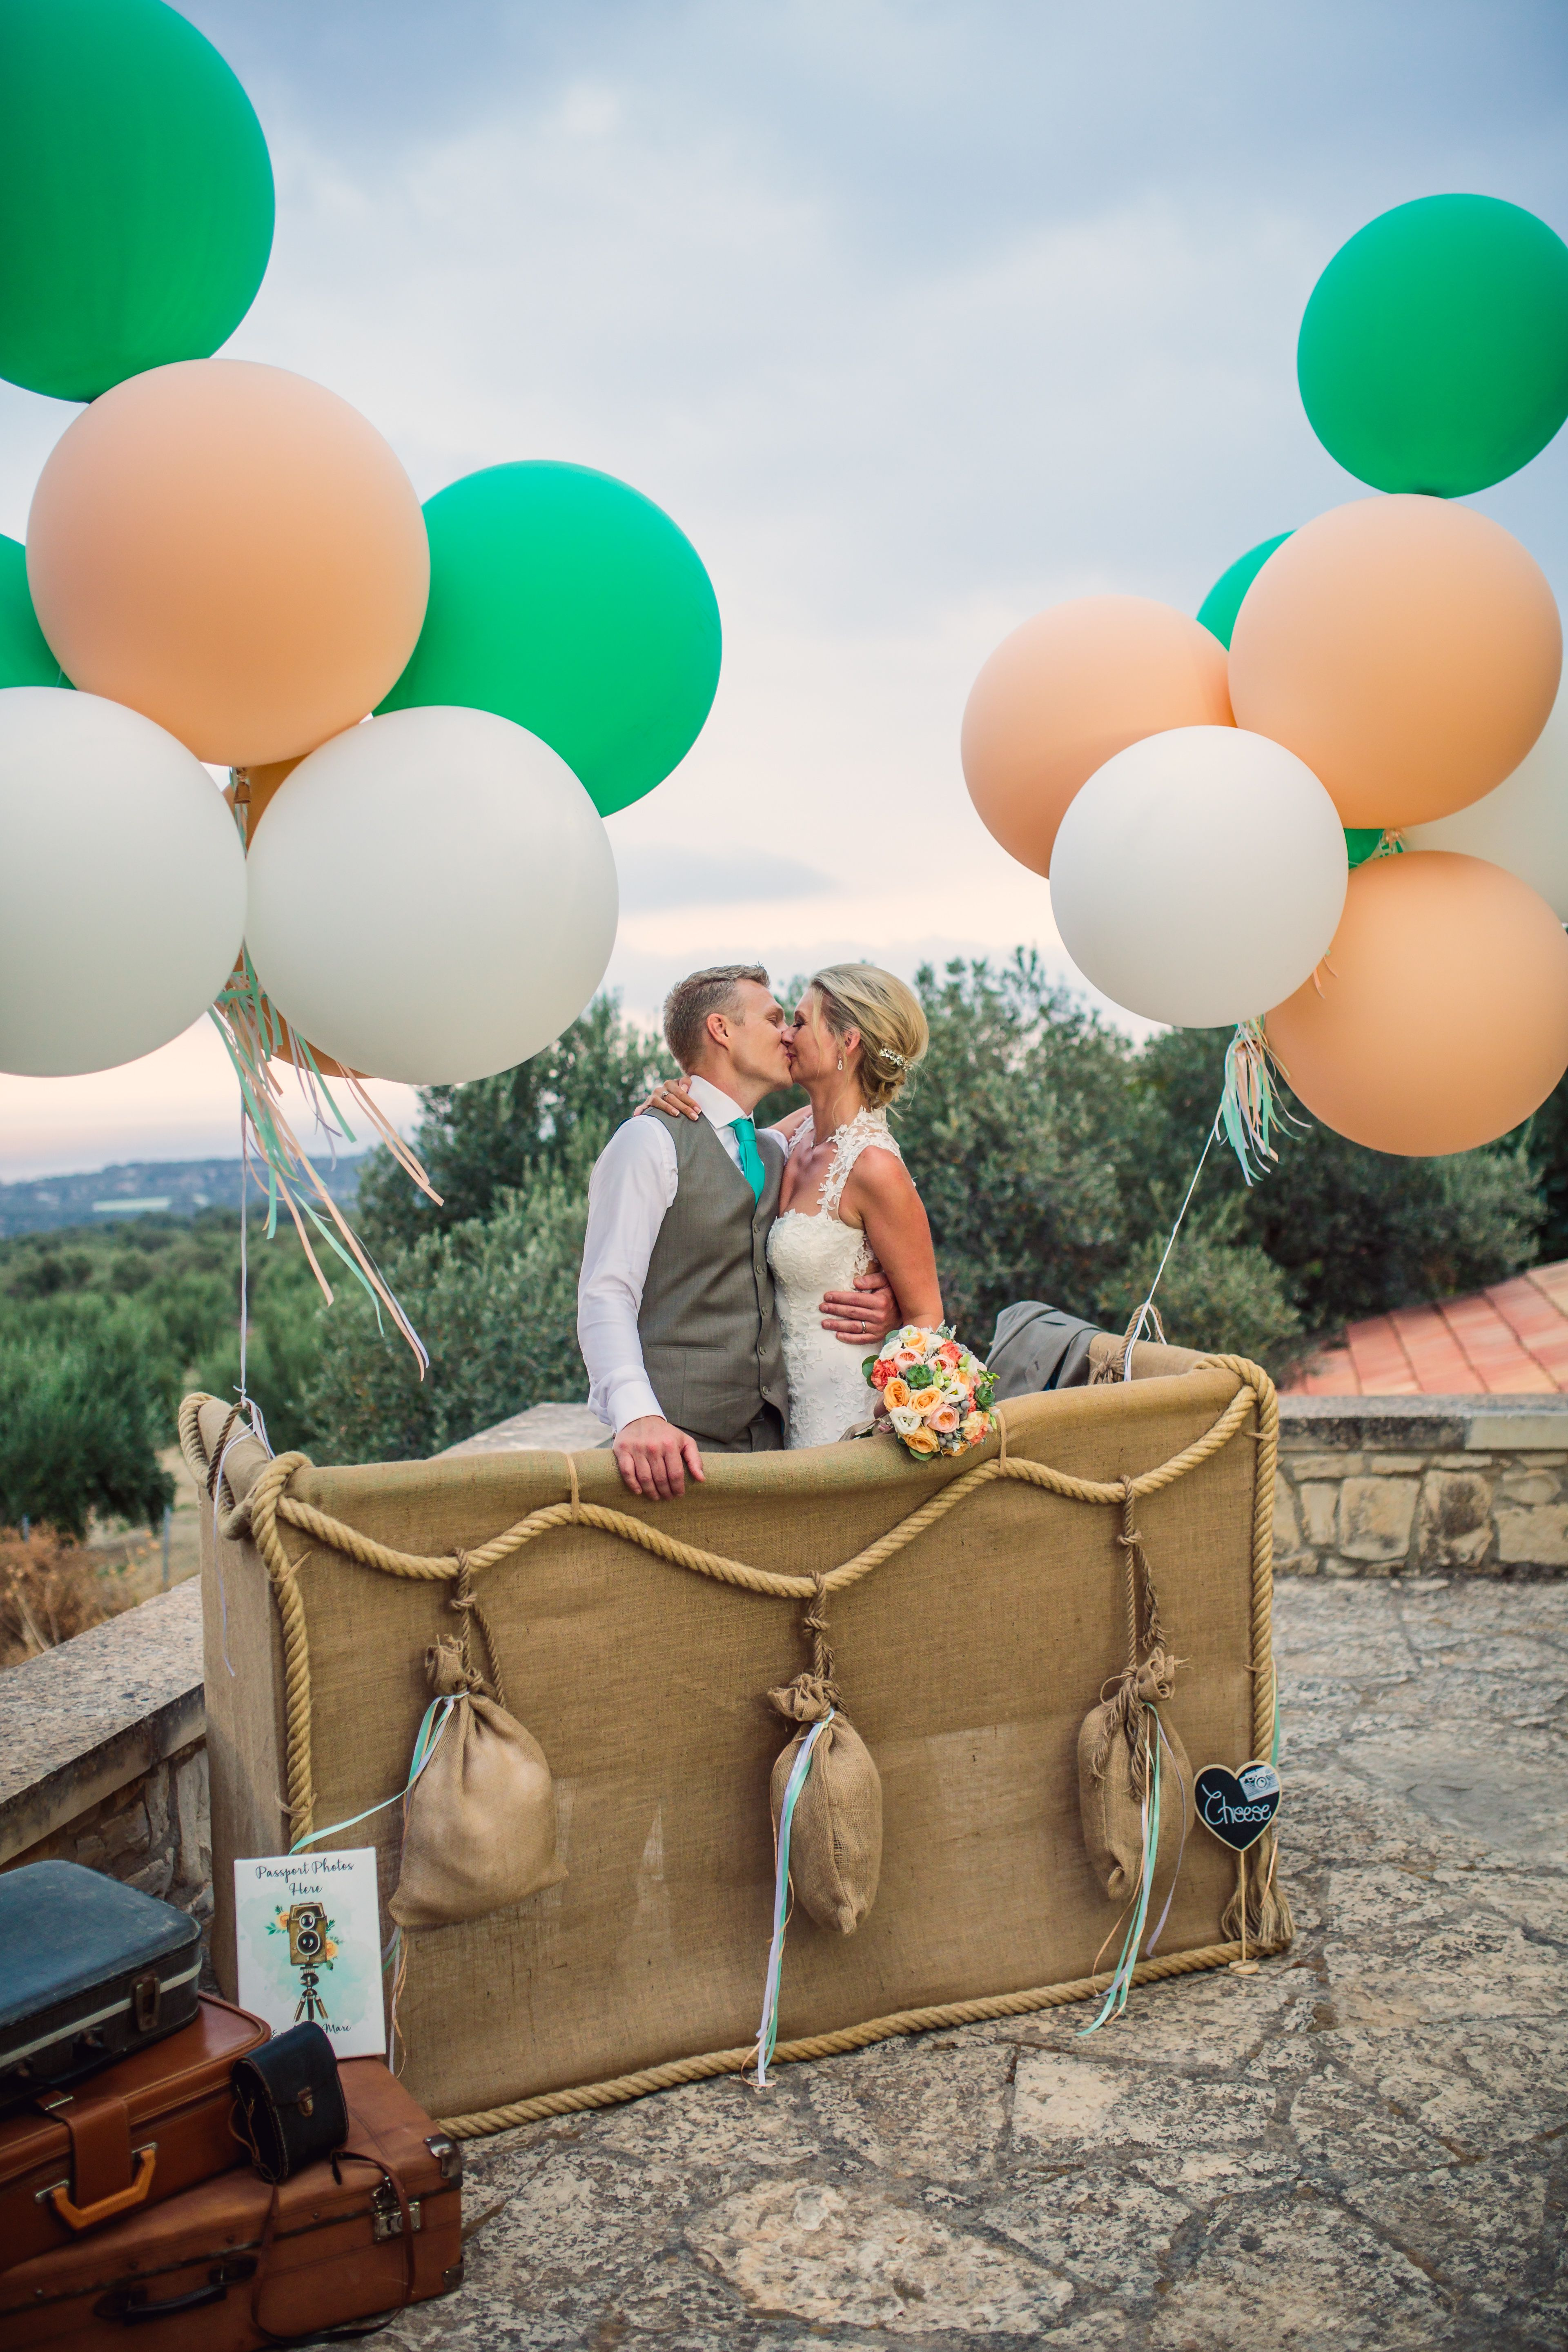 Wedding decoration ideas with balloons  Wedding photo booth  travel theme  hot air balloon  peach and